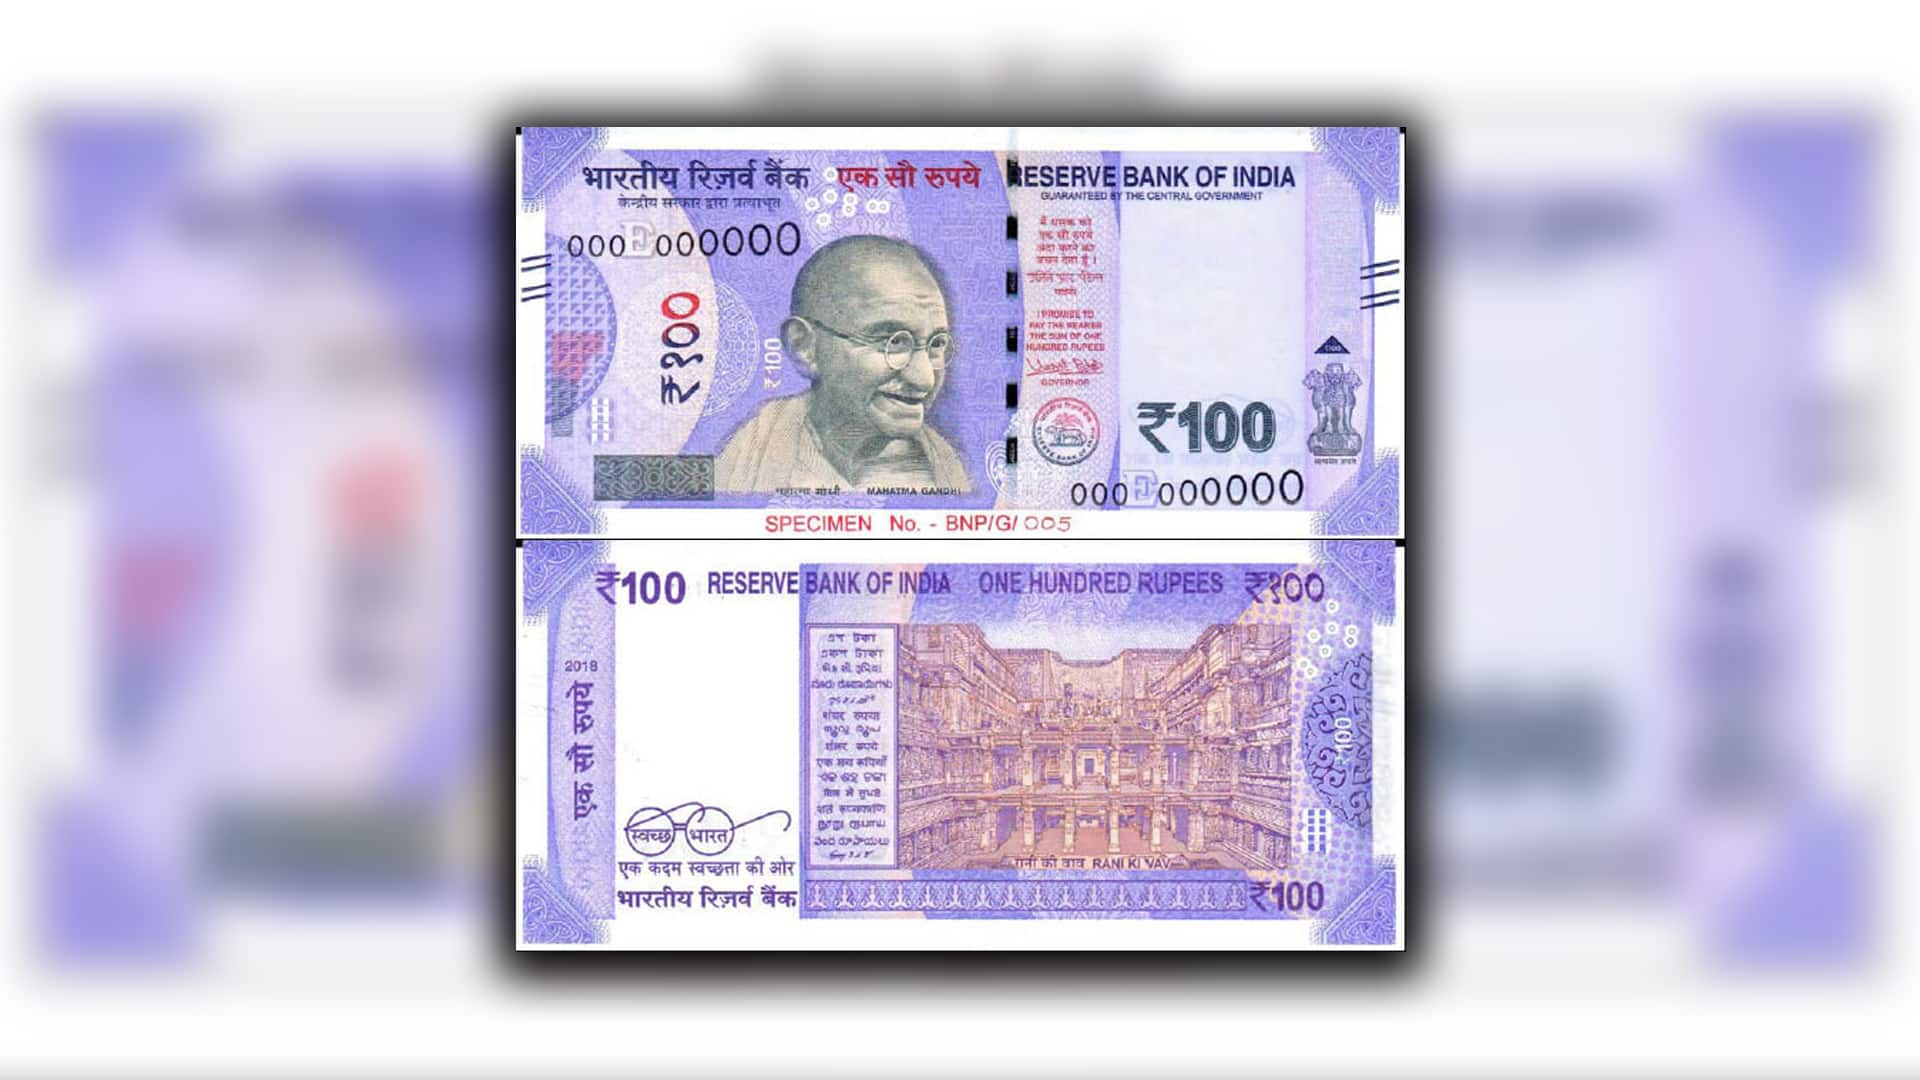 Know what's new in the new Rs 100 note issued by RBI